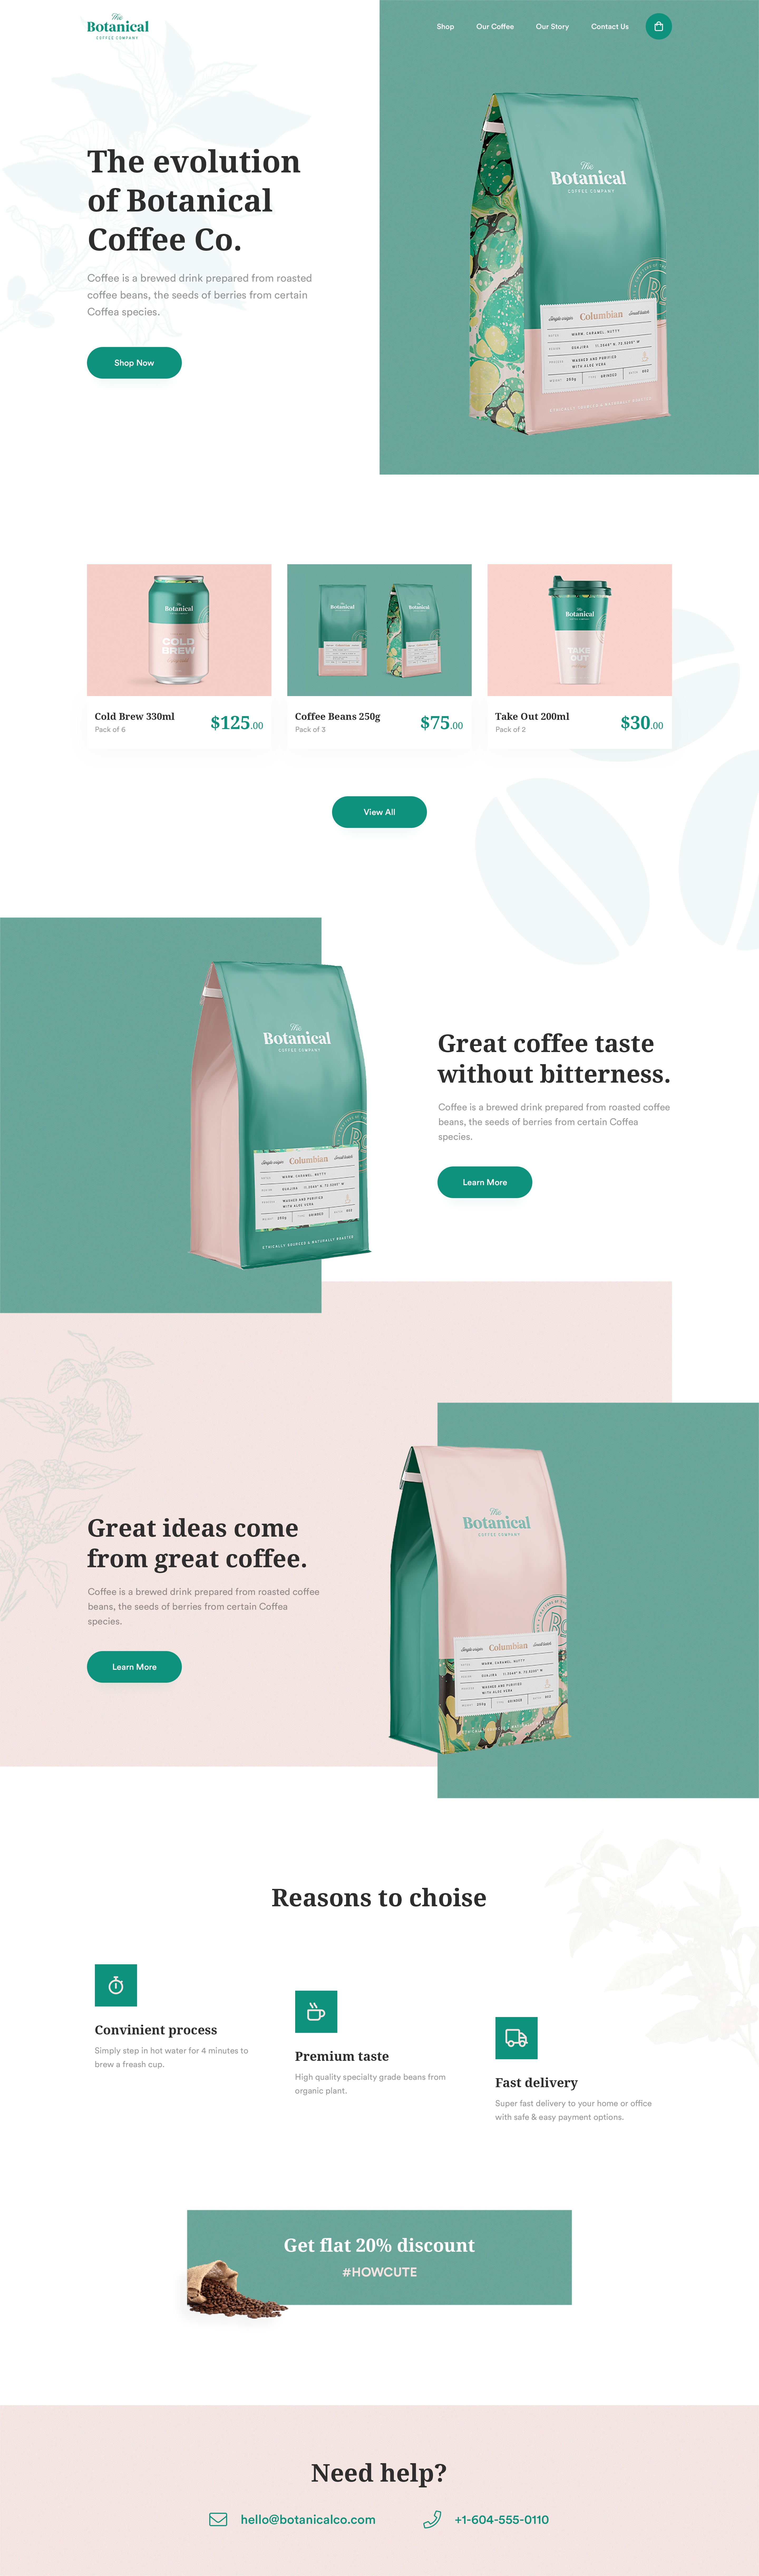 Product landing page 1